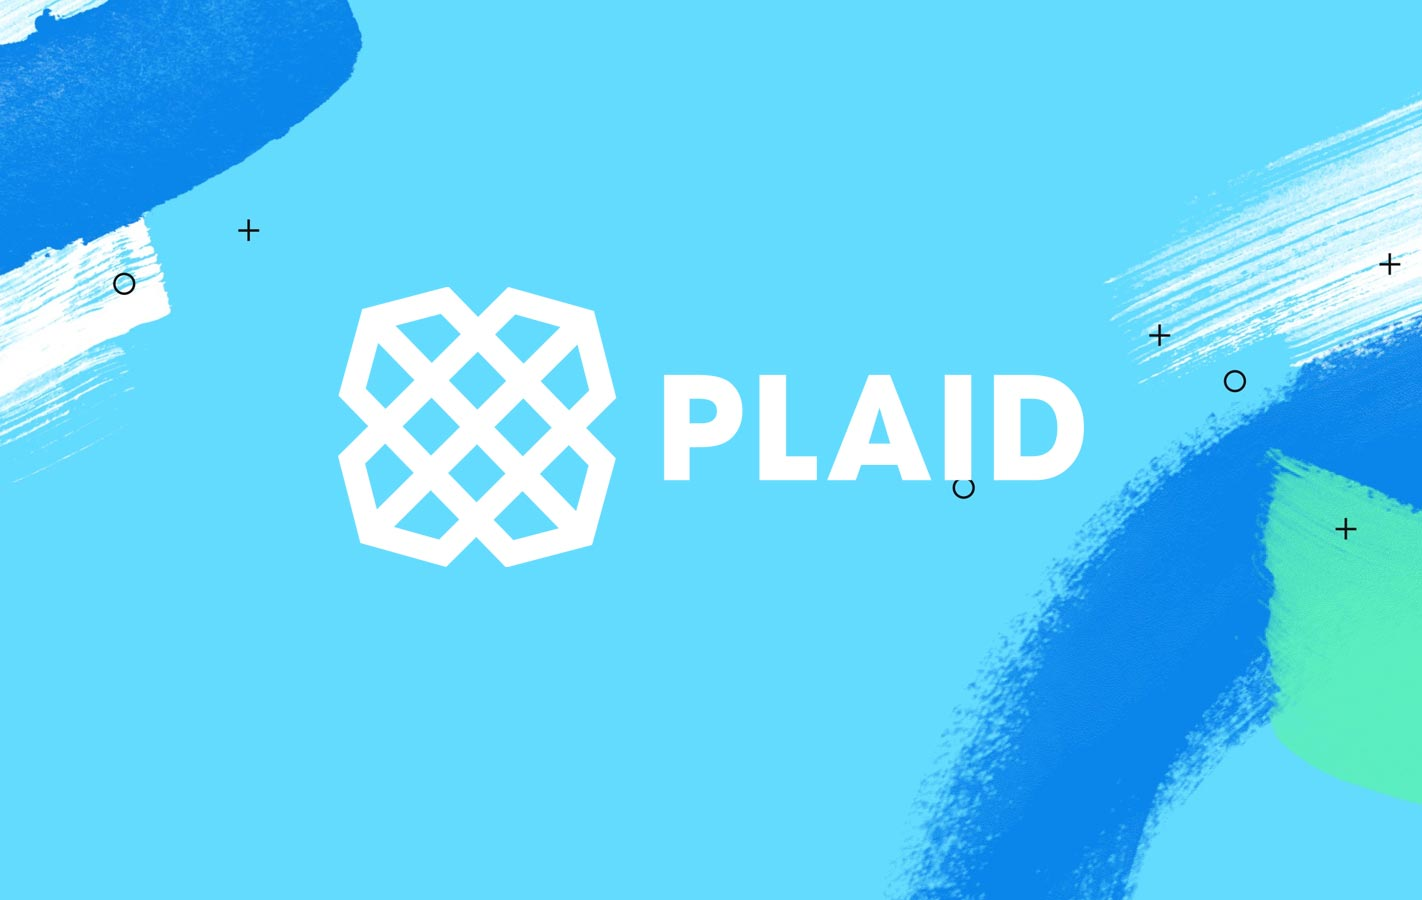 Plaid and Visa fell through but the latest valuation was $13.4 billion